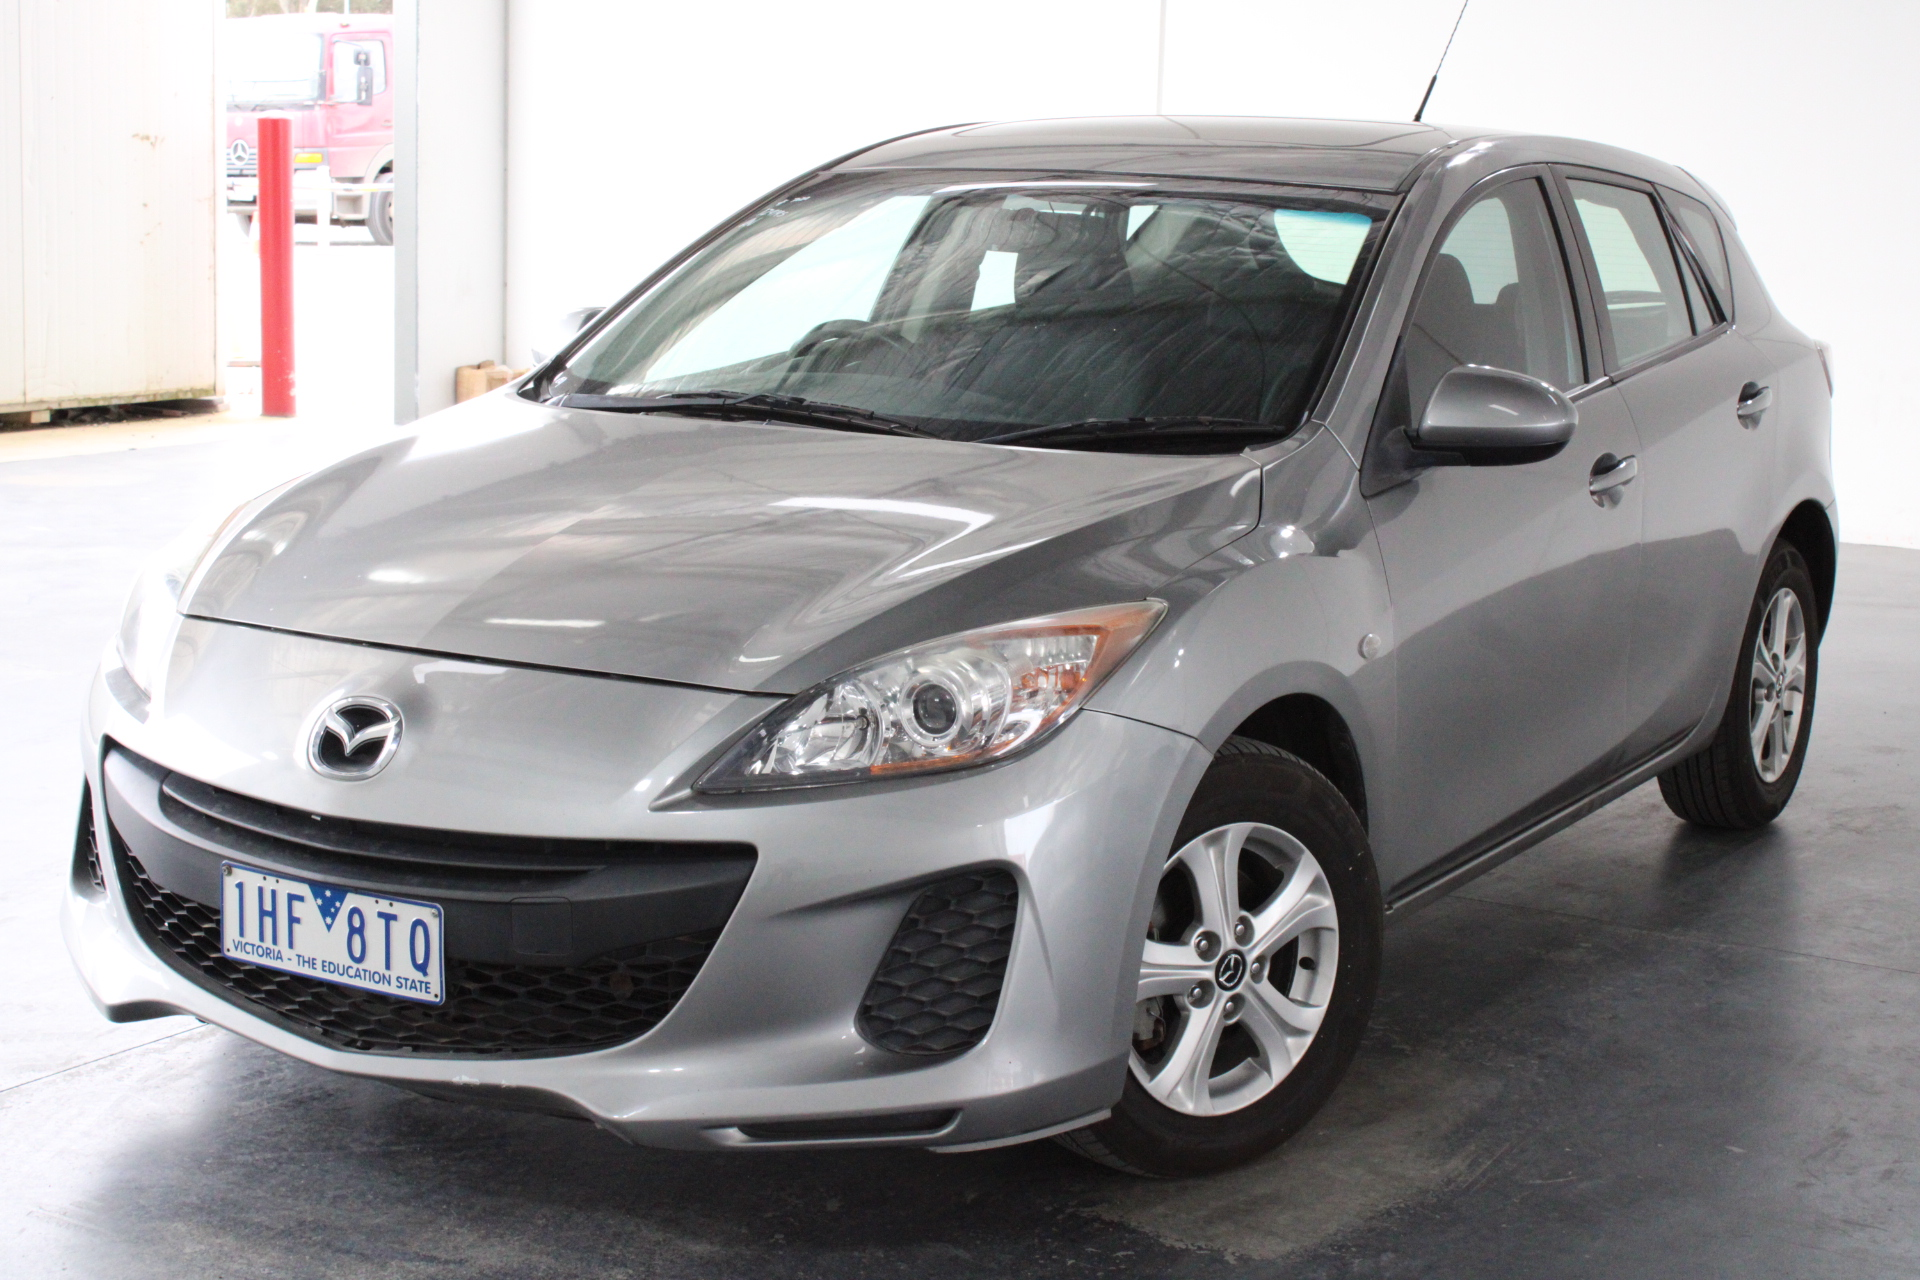 2013 Mazda 3 Neo BL Automatic Hatchback (WOVR Inspected)